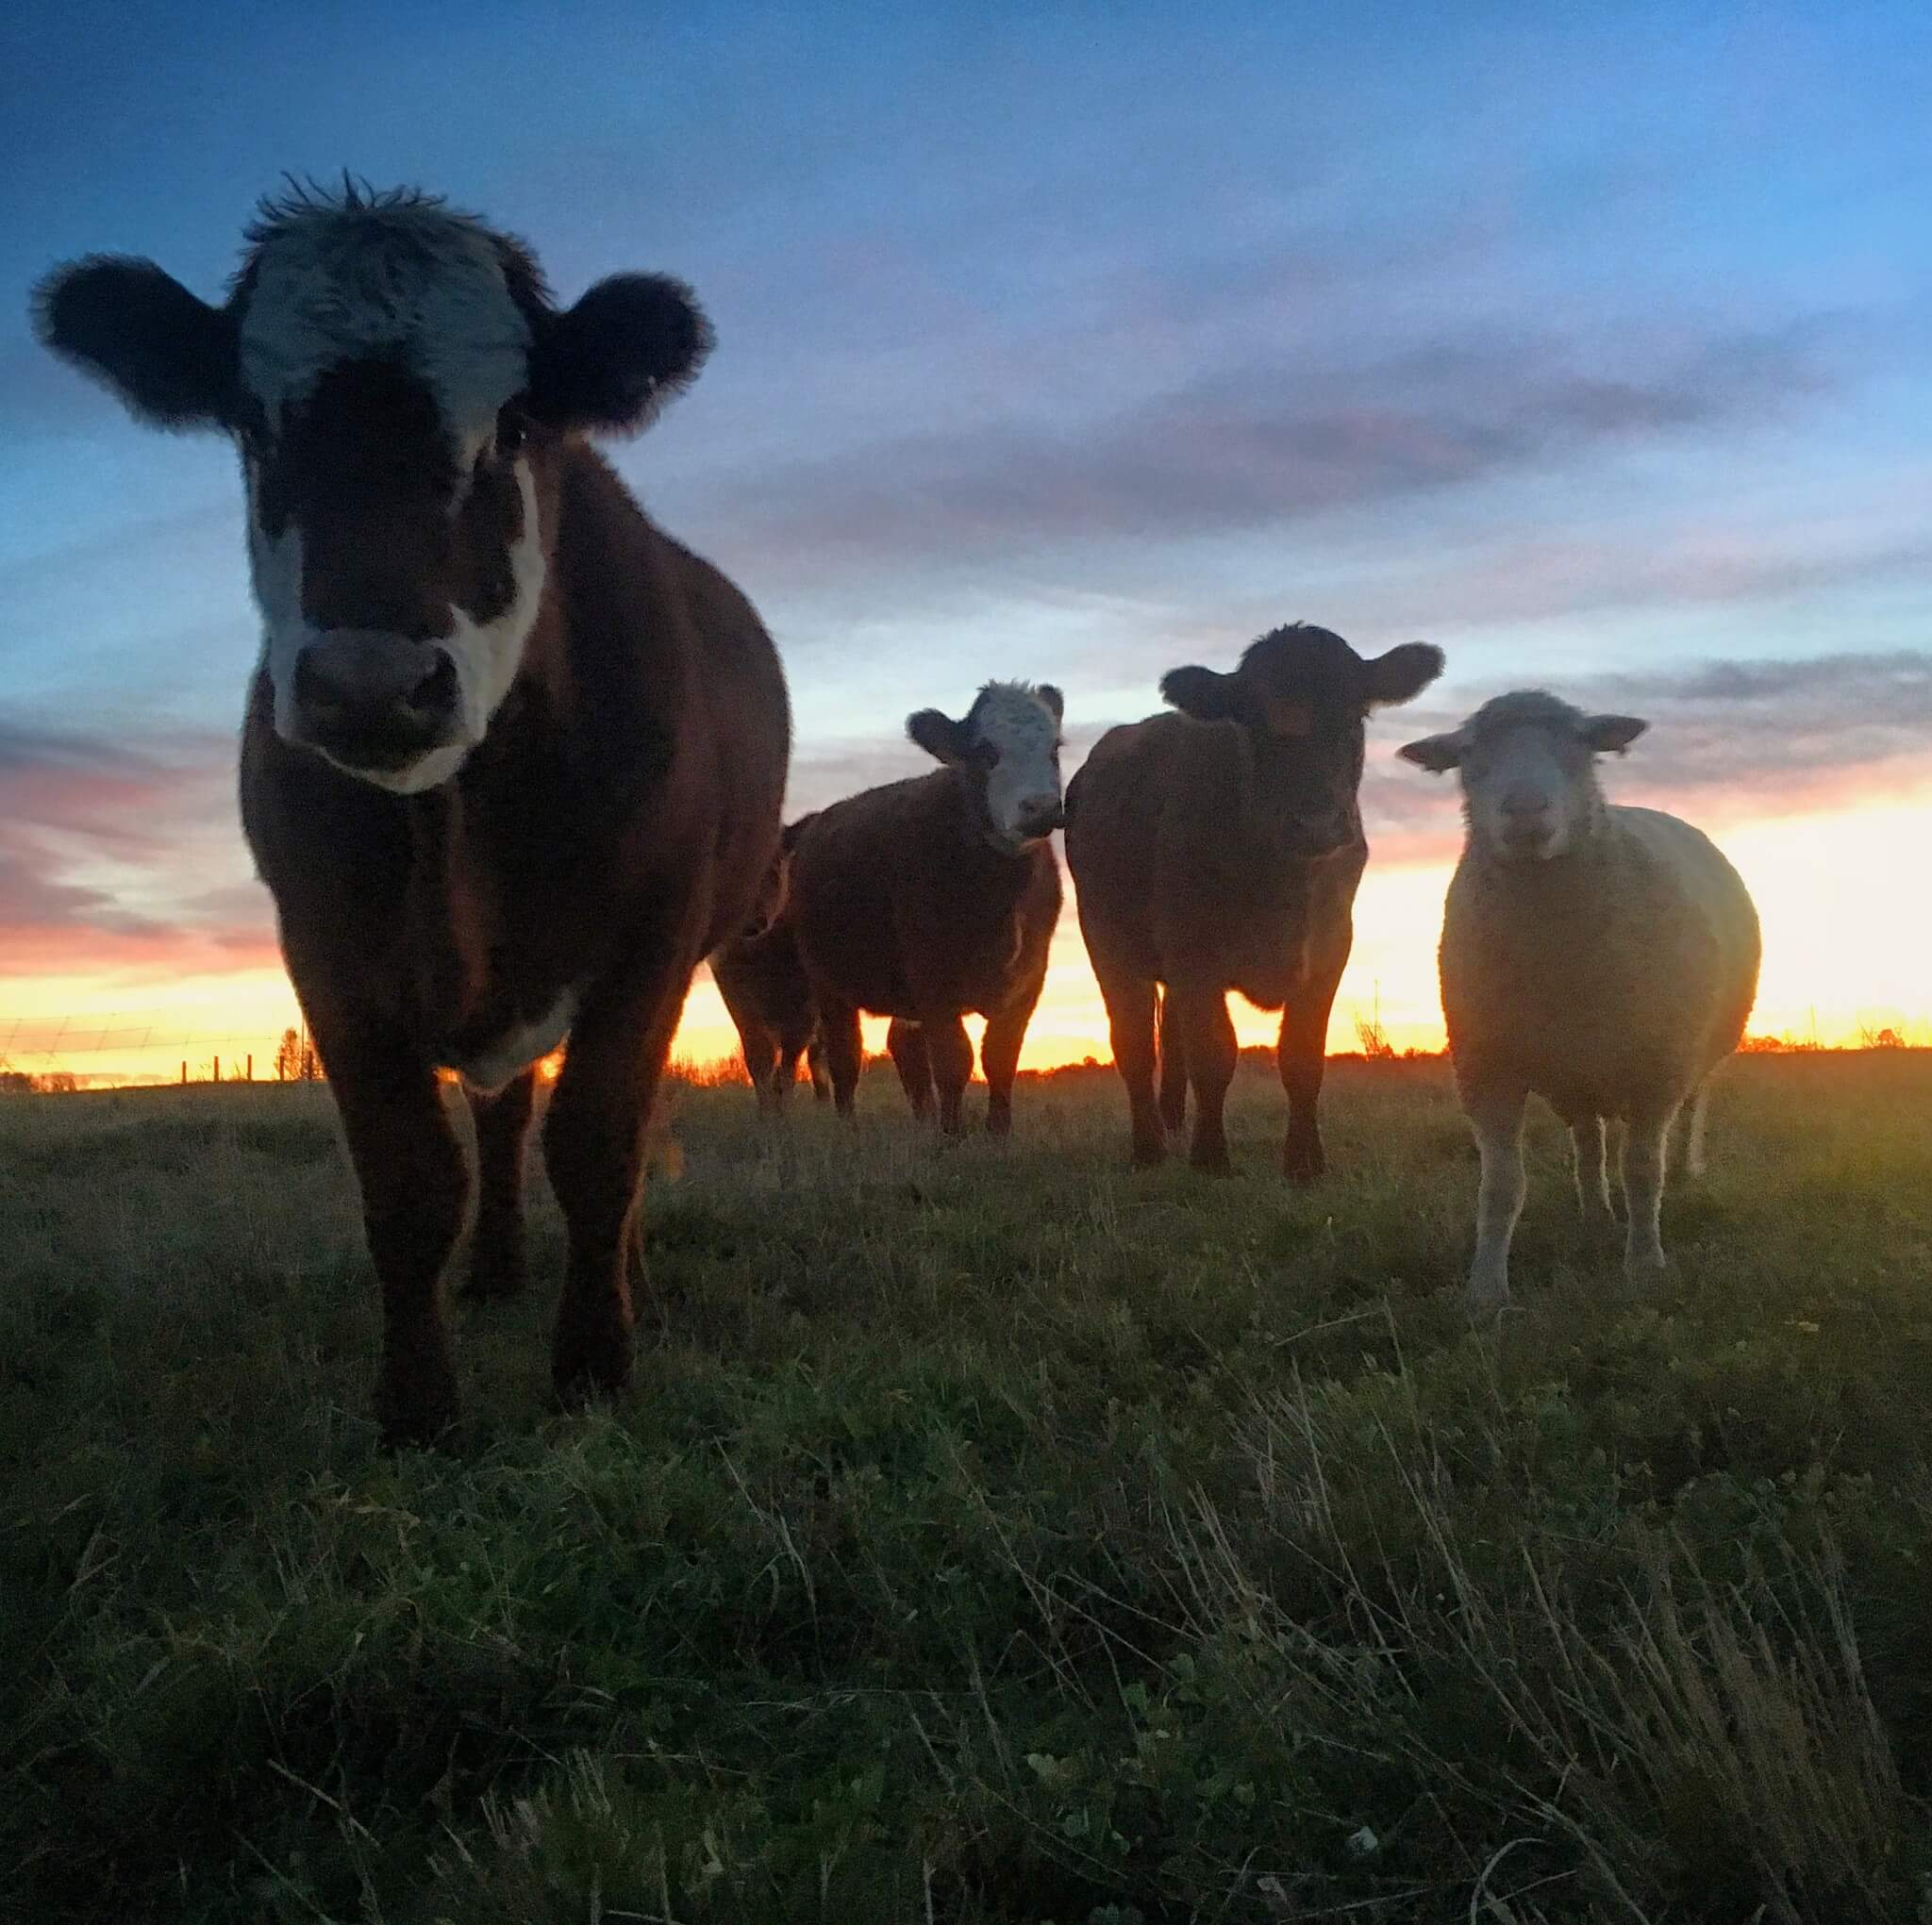 Cows in the field at sunset